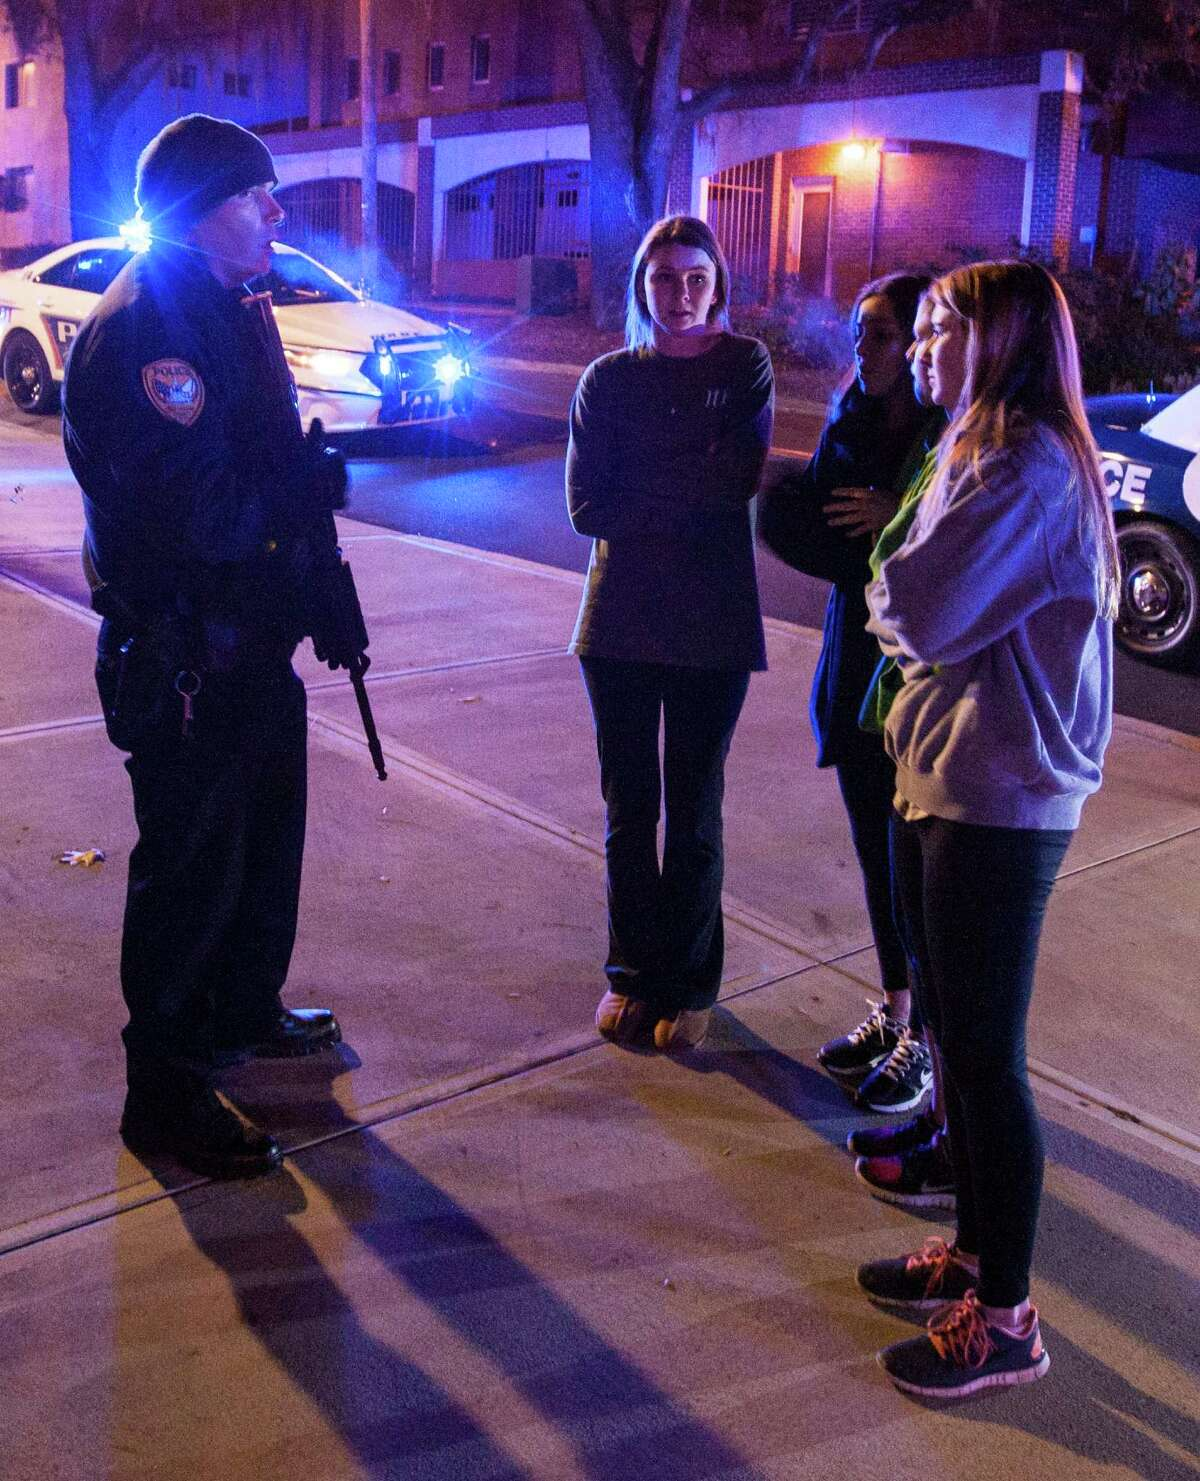 A Tallahassee police officer talks to several students outside the Strozier library on the Florida State University campus in Tallahassee, FL. where a shooting occurred Thursday Nov 20, 2014. The gunman was shot and killed by police officers.